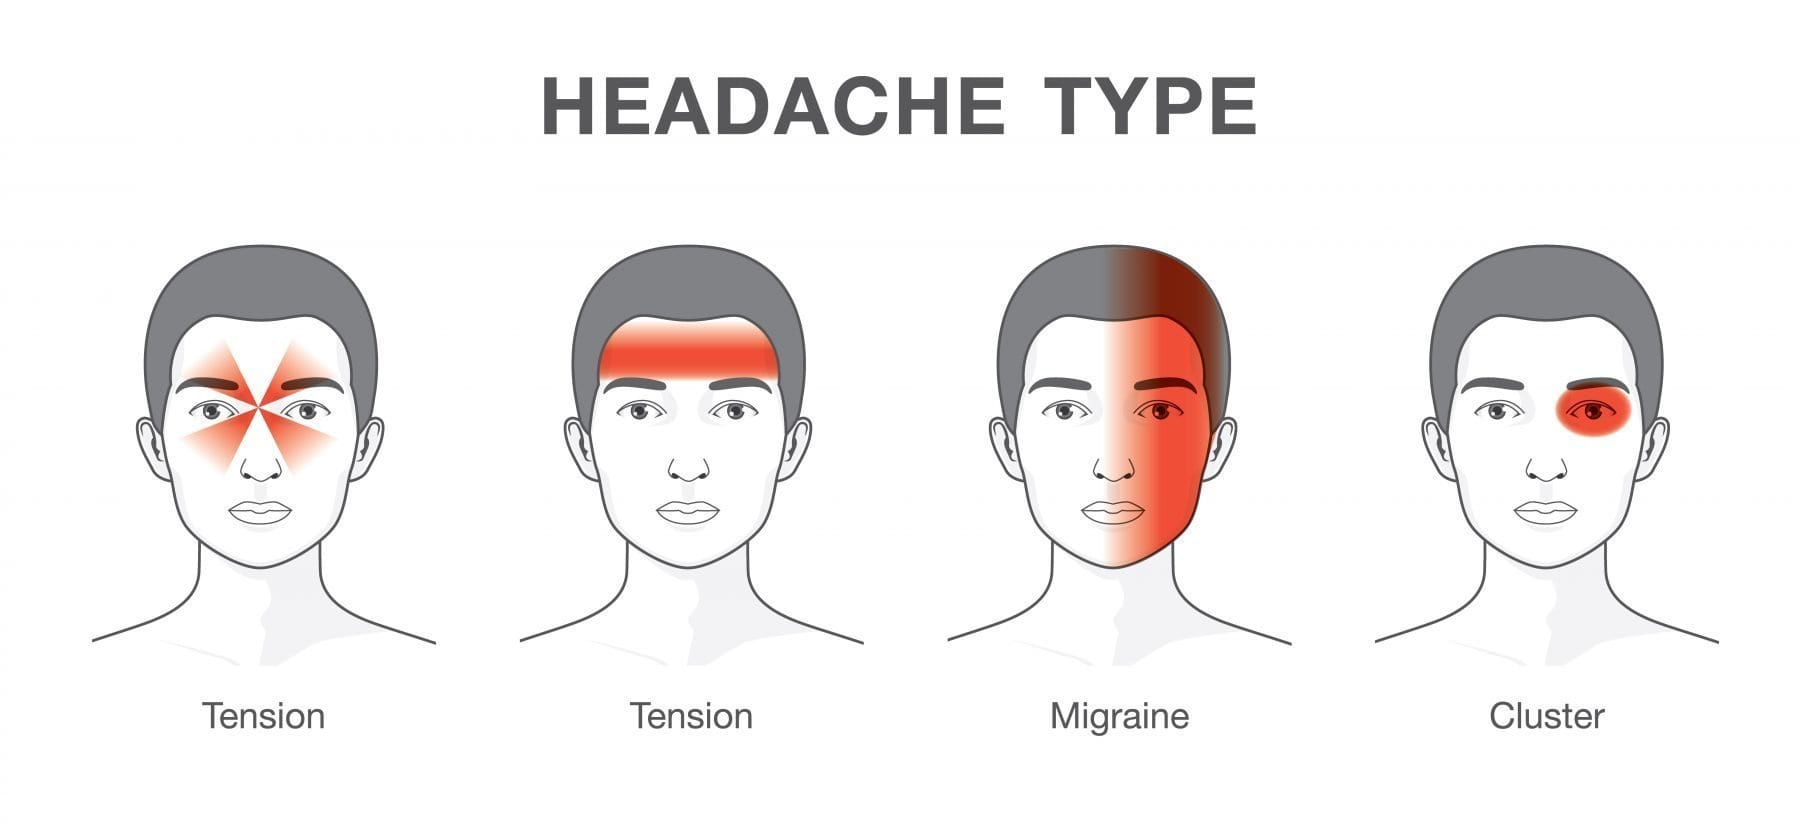 types of headaches illustration